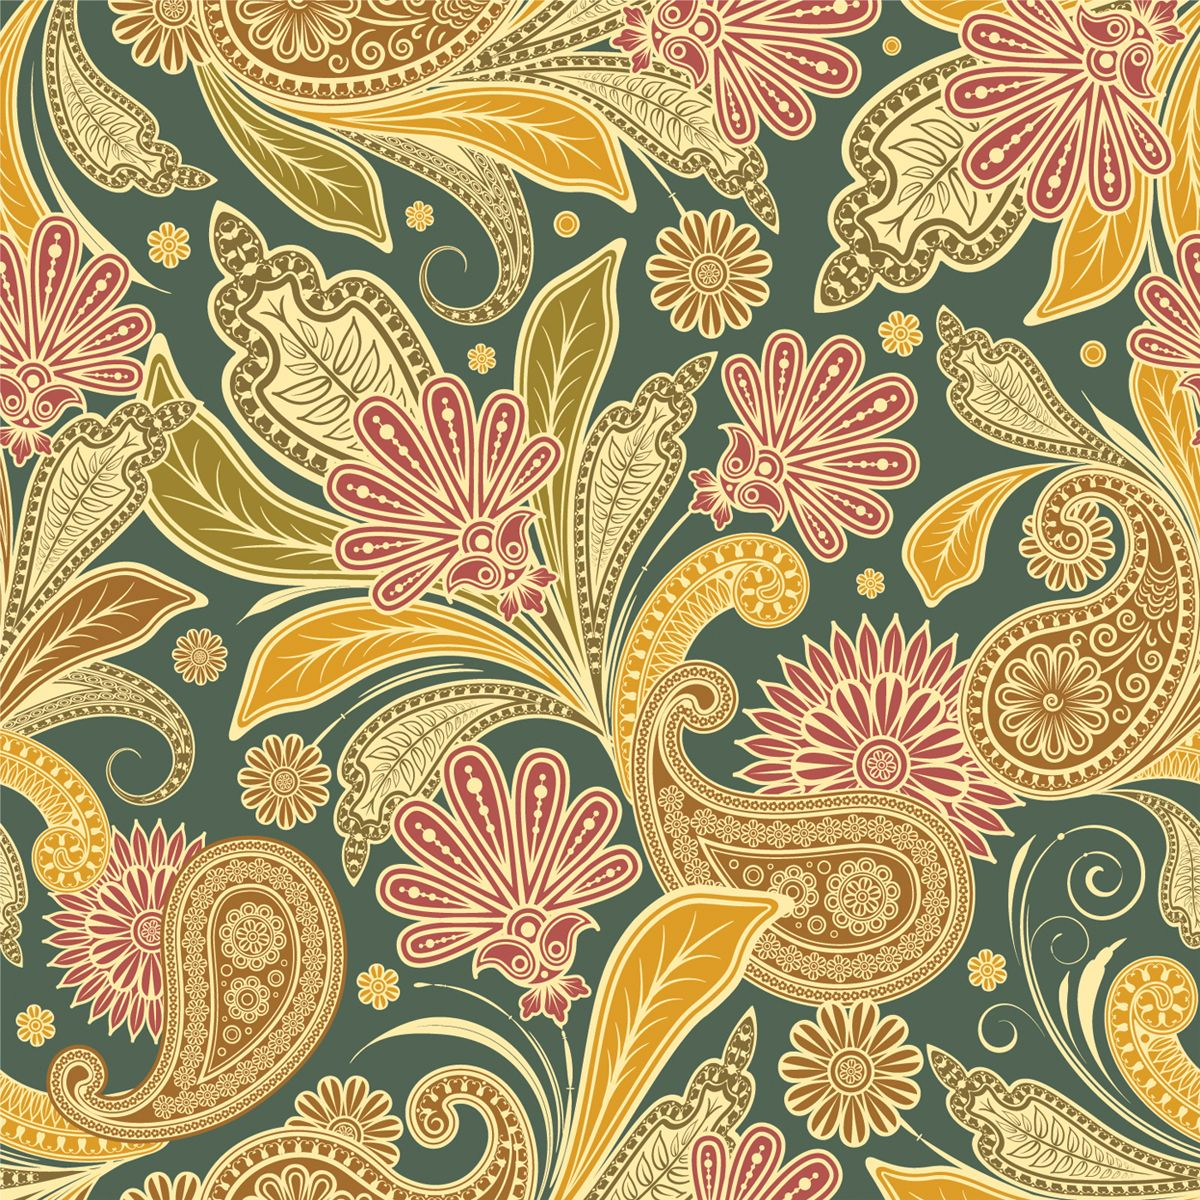 Pin by Margeaux Danika Mercado on vintage wedding | Pinterest ... for Indian Fabric Designs Patterns  56mzq